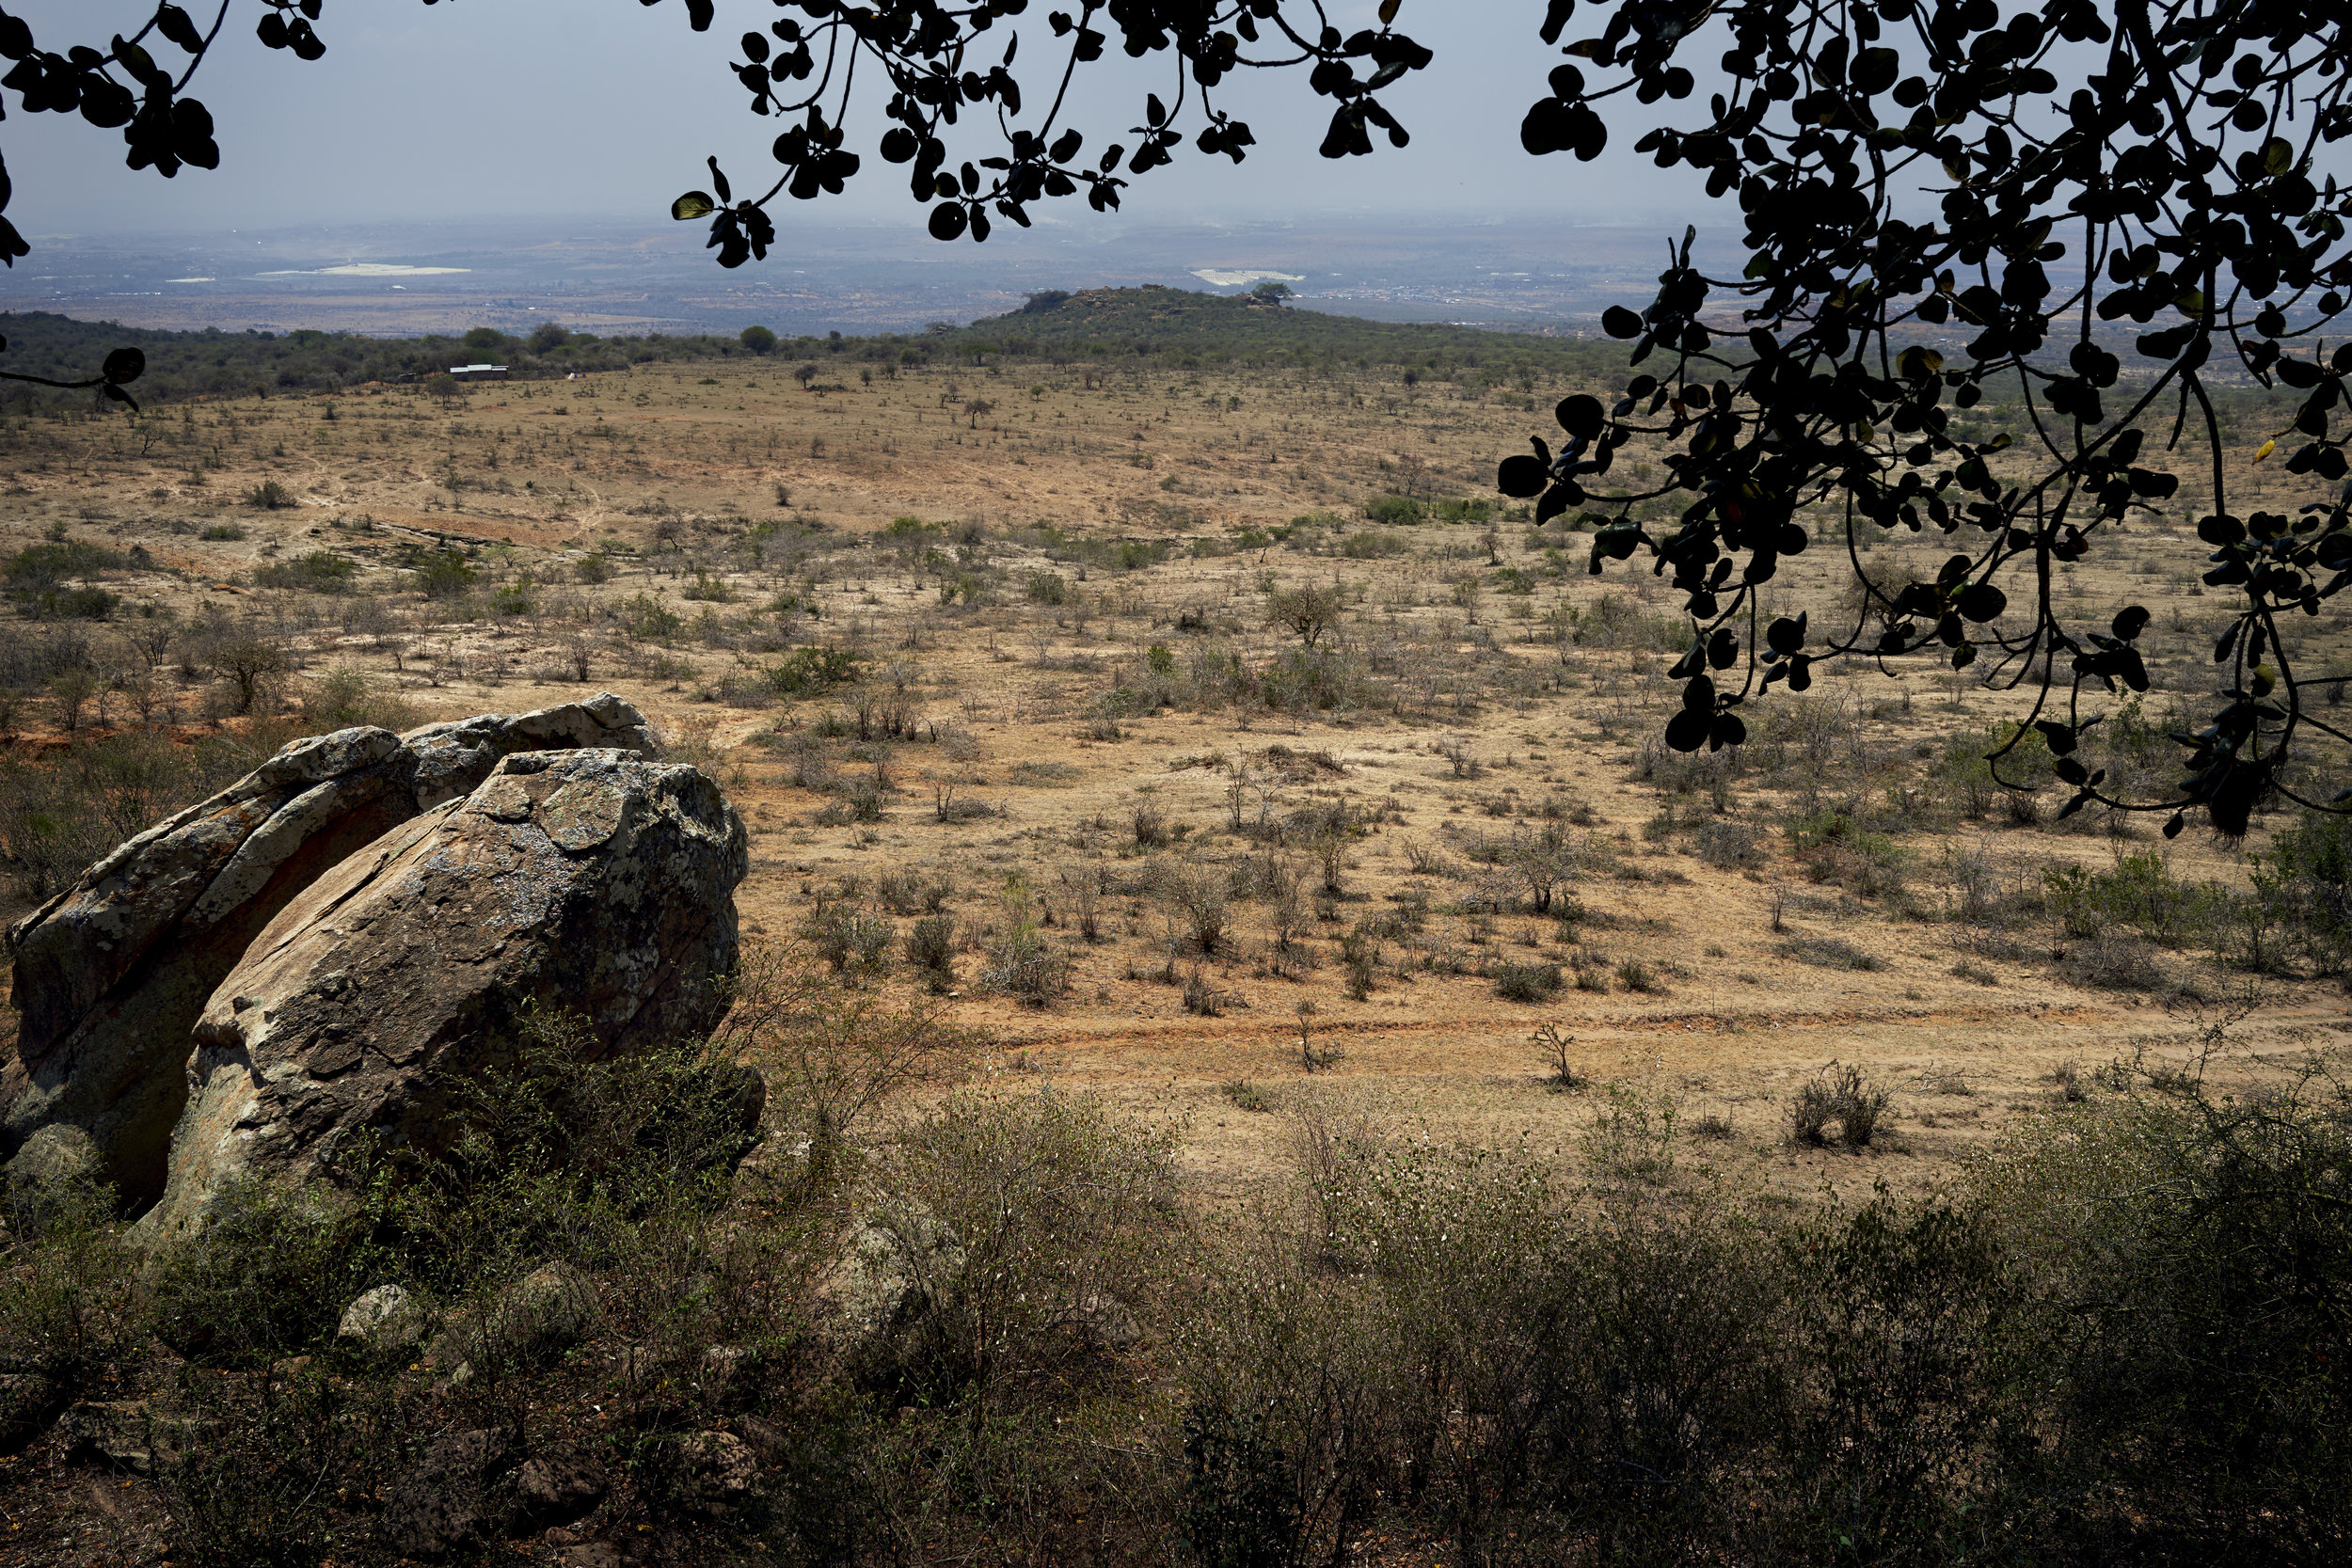 A view over Lukenya, an hour or so outside of Nairobi. I come here a lot to unwind from the chaos of the city.